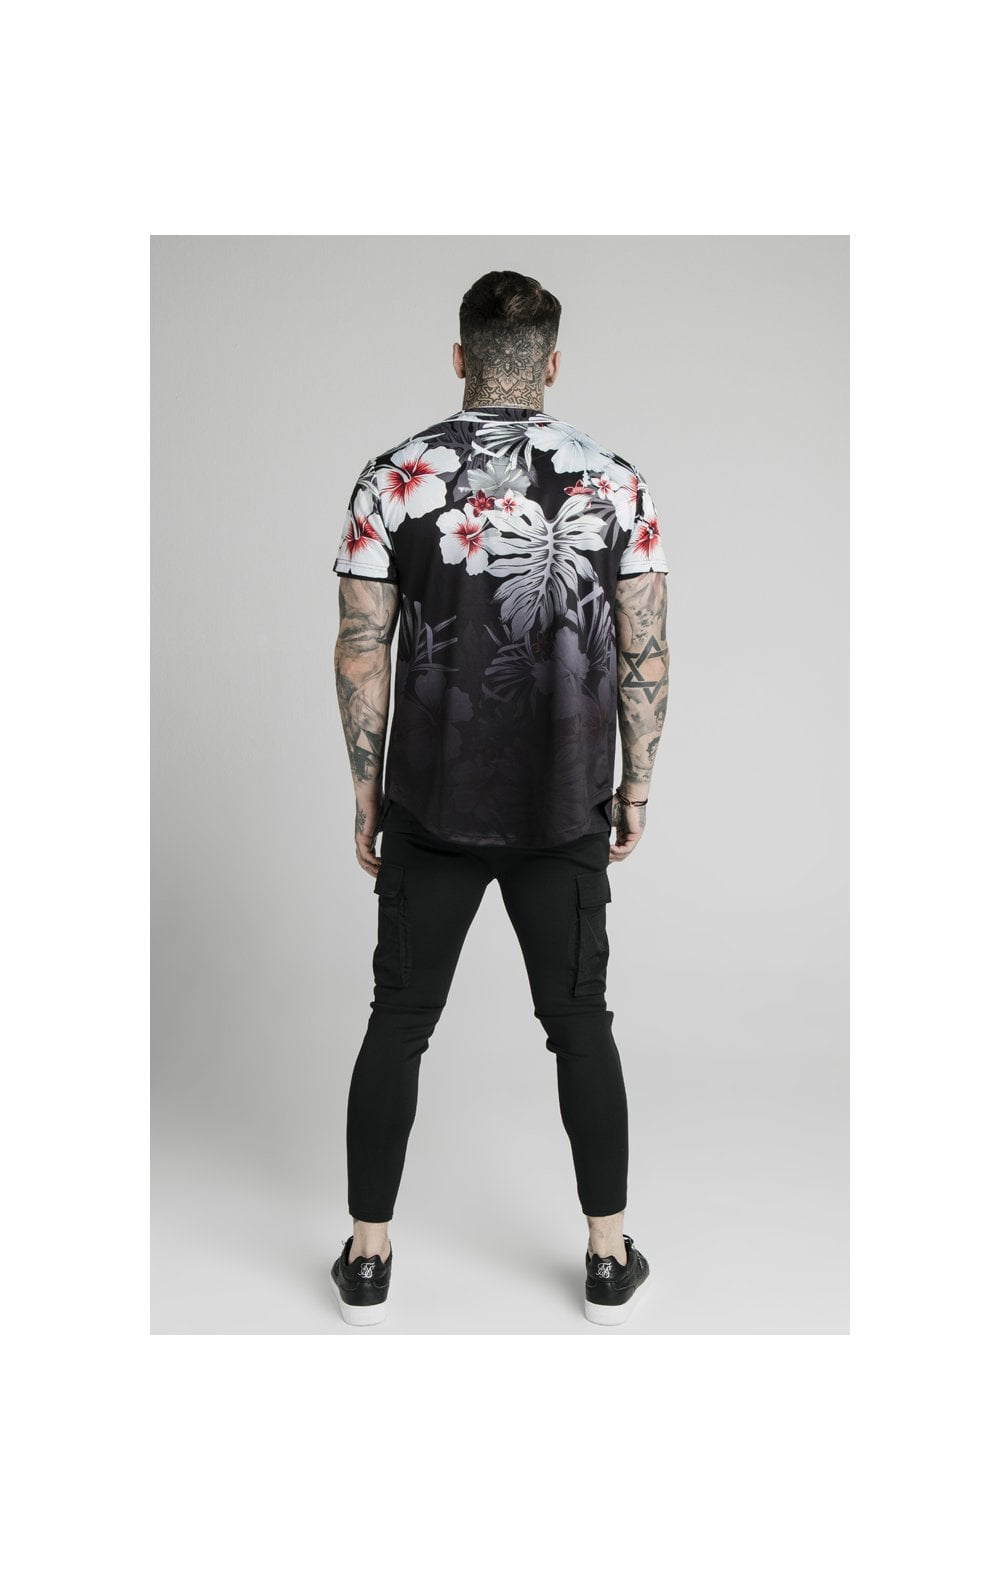 Load image into Gallery viewer, SikSilk Floral Baseball Jersey - Black (4)